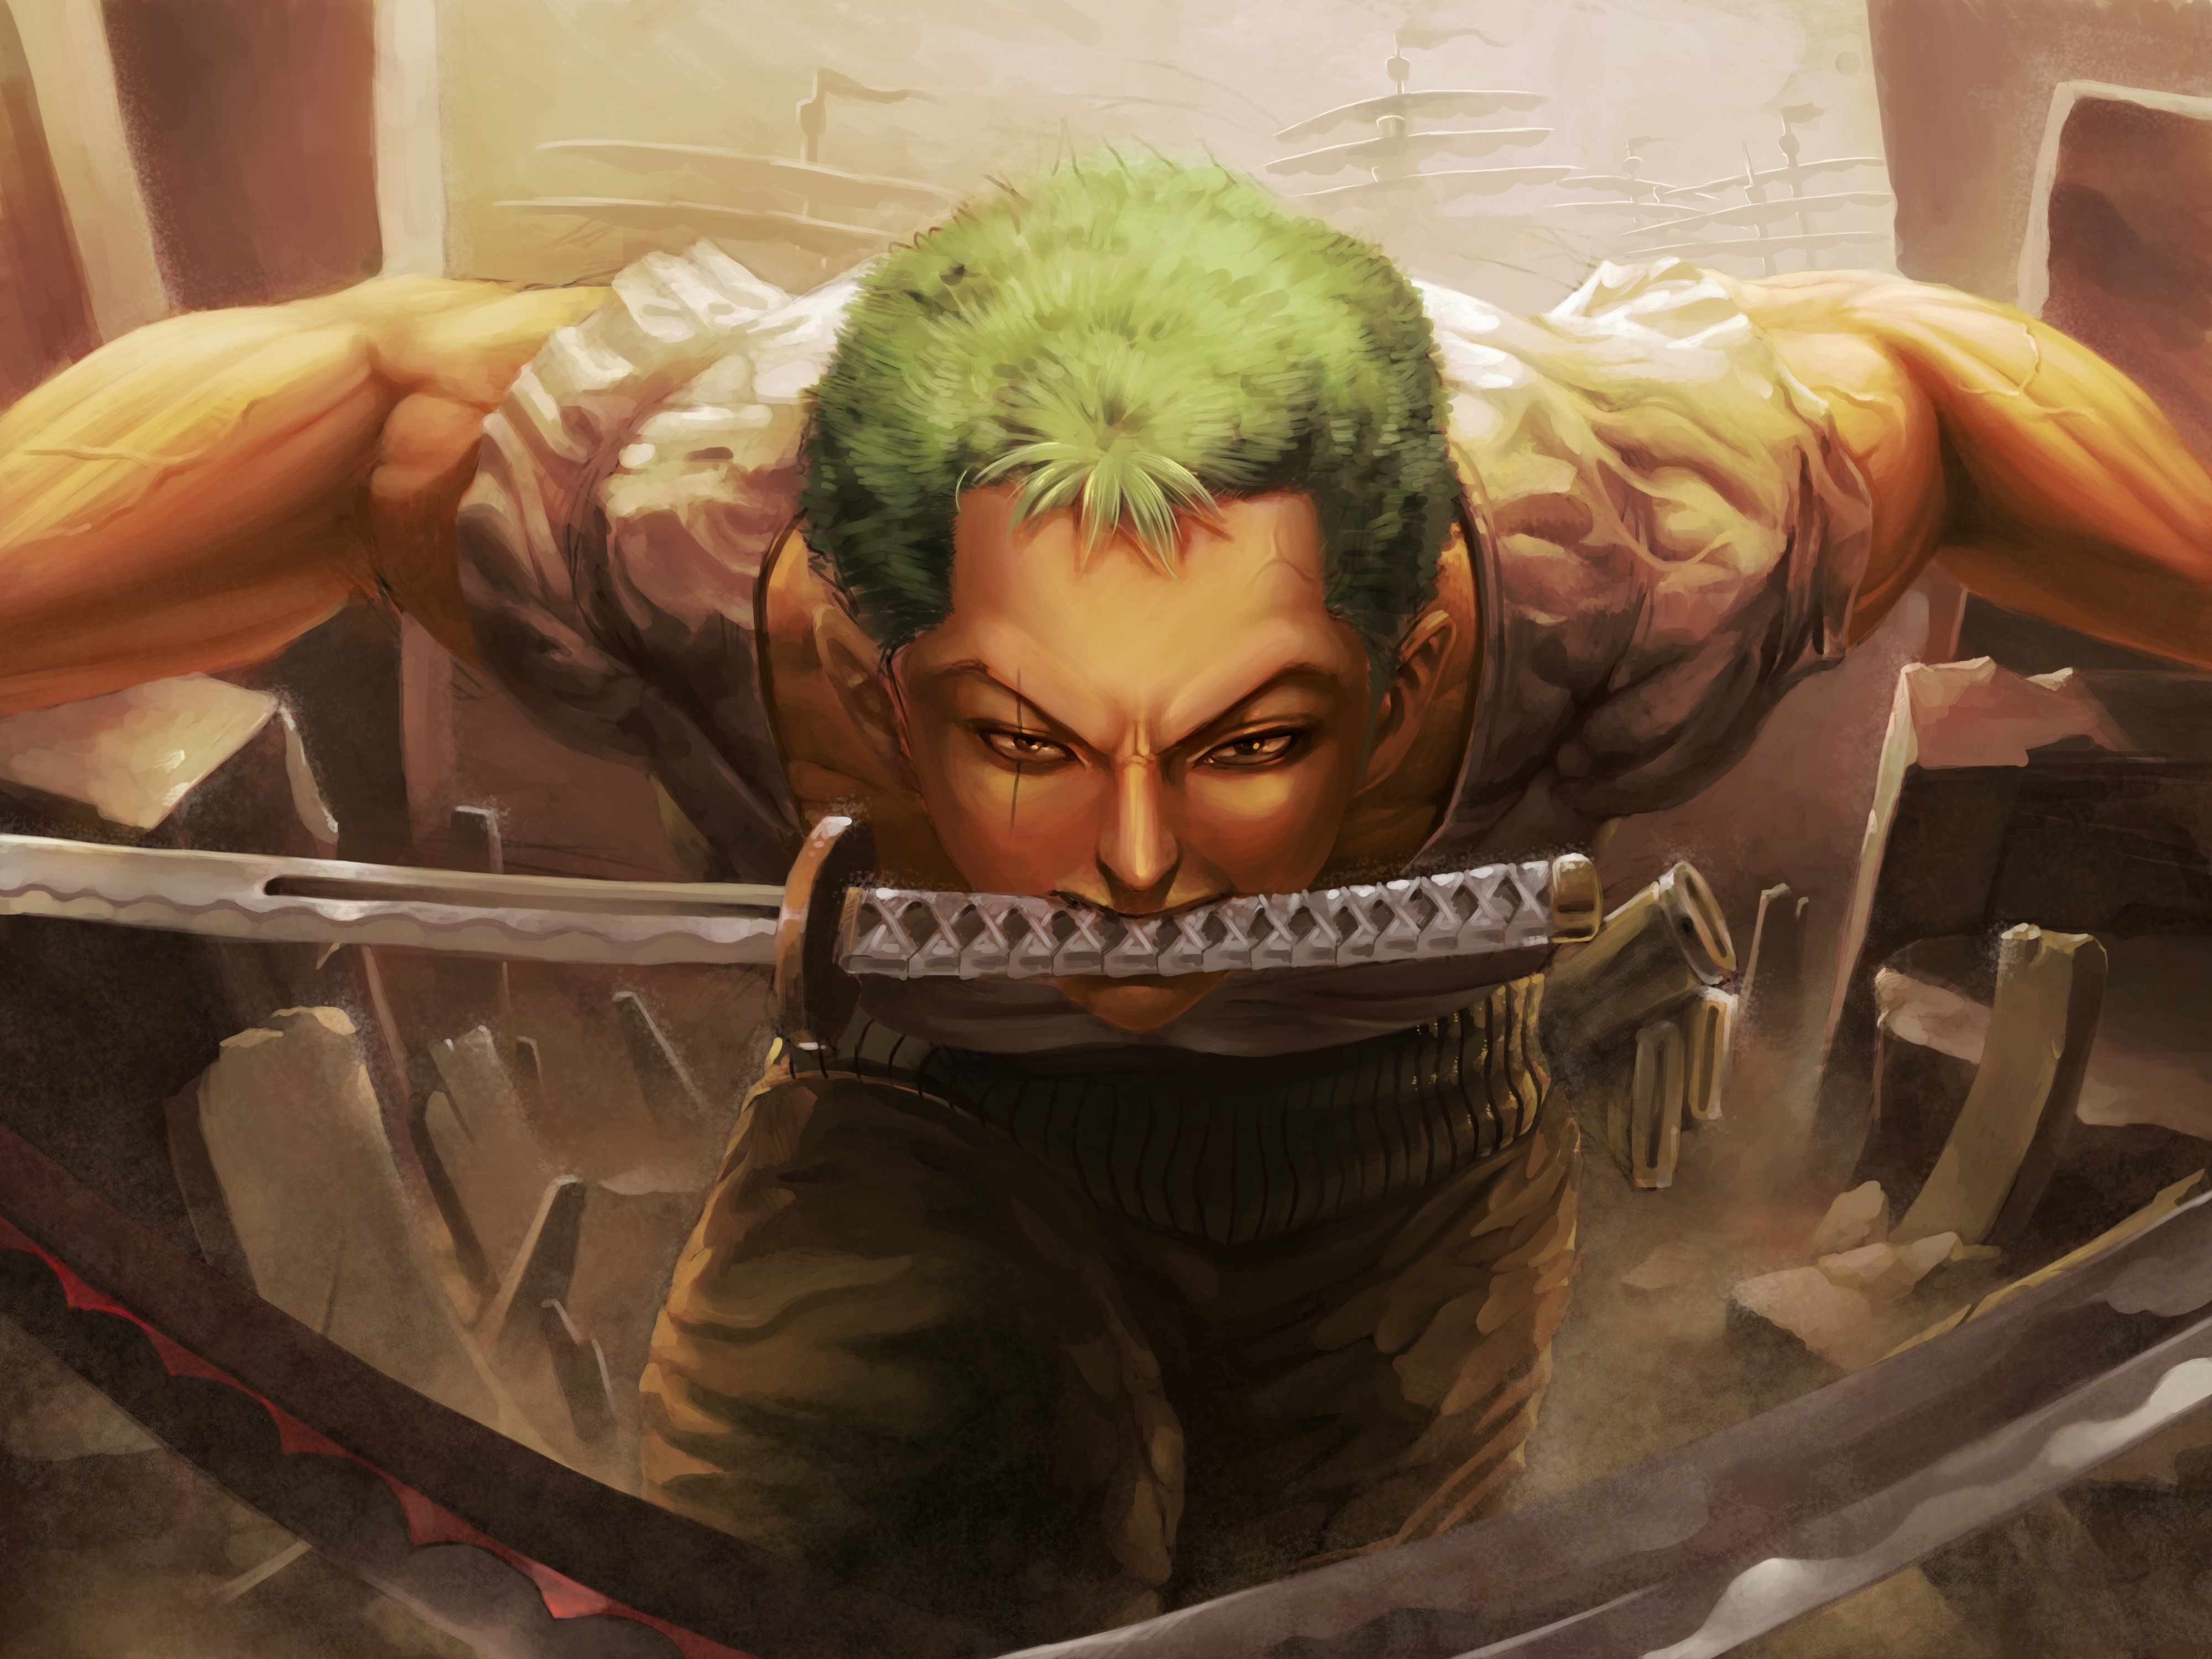 320x240 Roronoa Zoro 4k Apple Iphone Ipod Touch Galaxy Ace Hd 4k Wallpapers Images Backgrounds Photos And Pictures